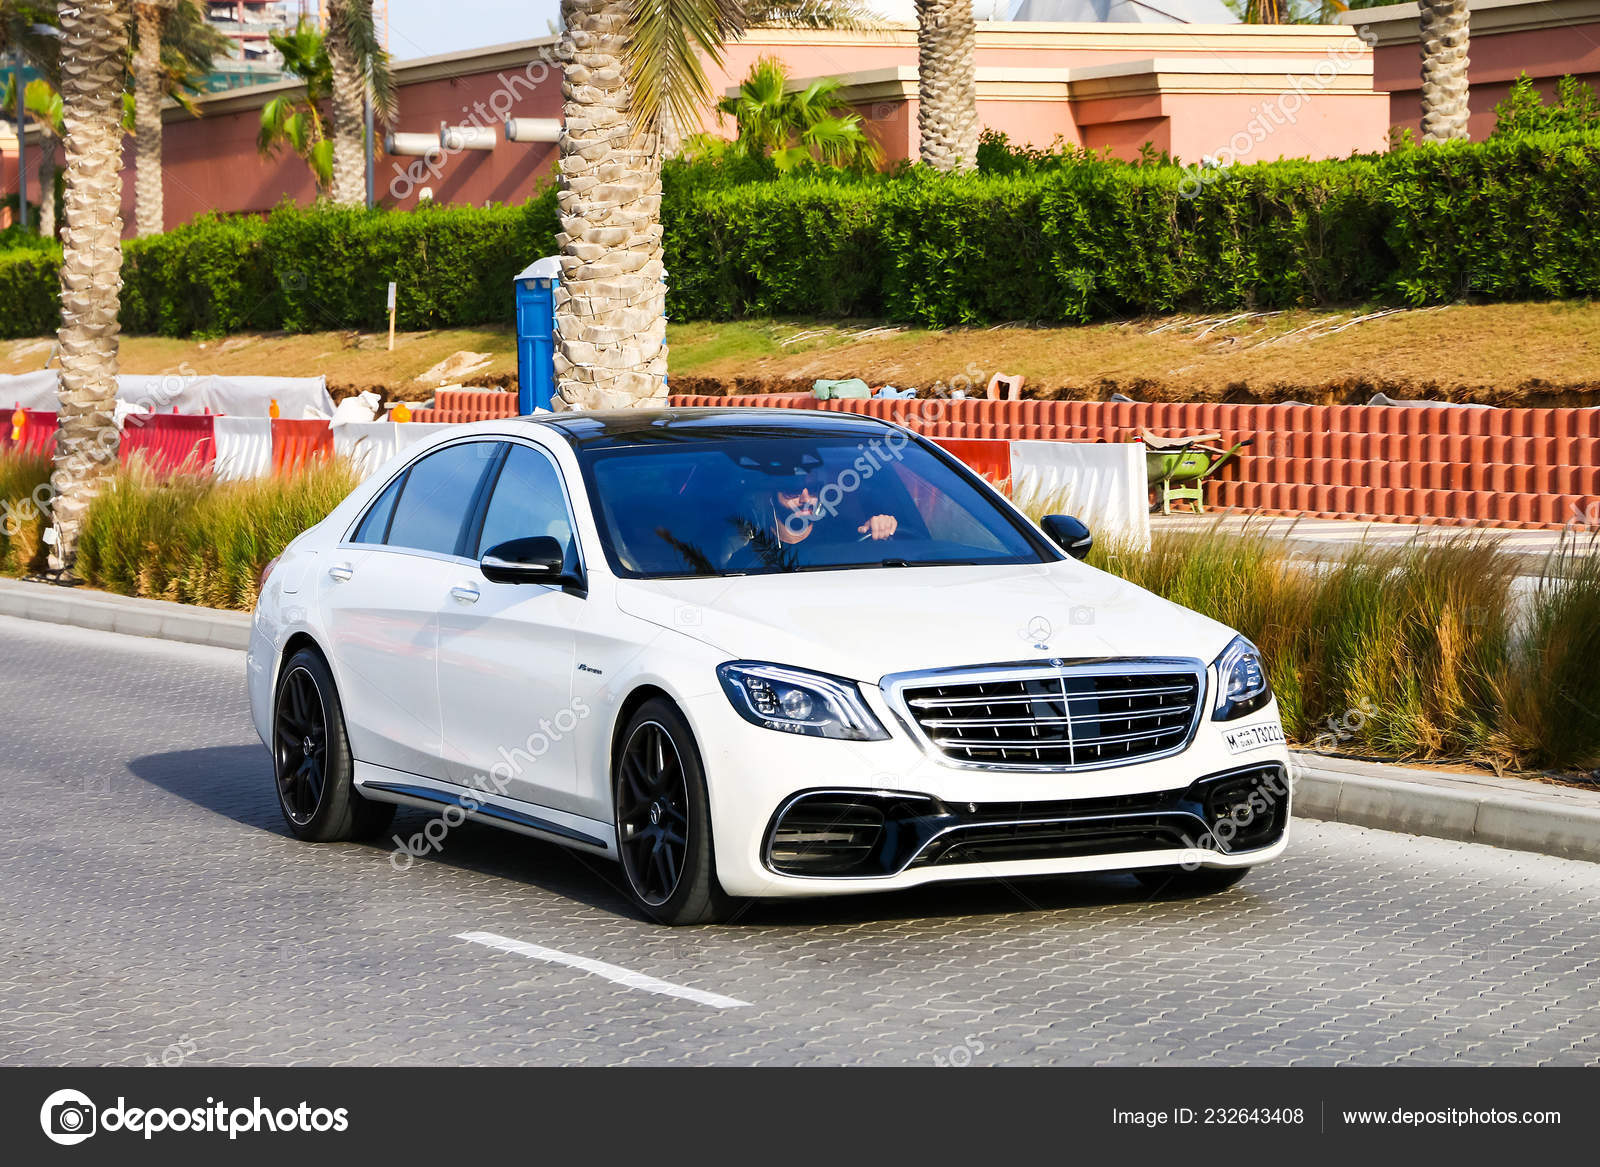 Dubai Uae November 2018 Luxury Car Mercedes Benz W222 S63 Stock Editorial Photo C Artzzz 232643408